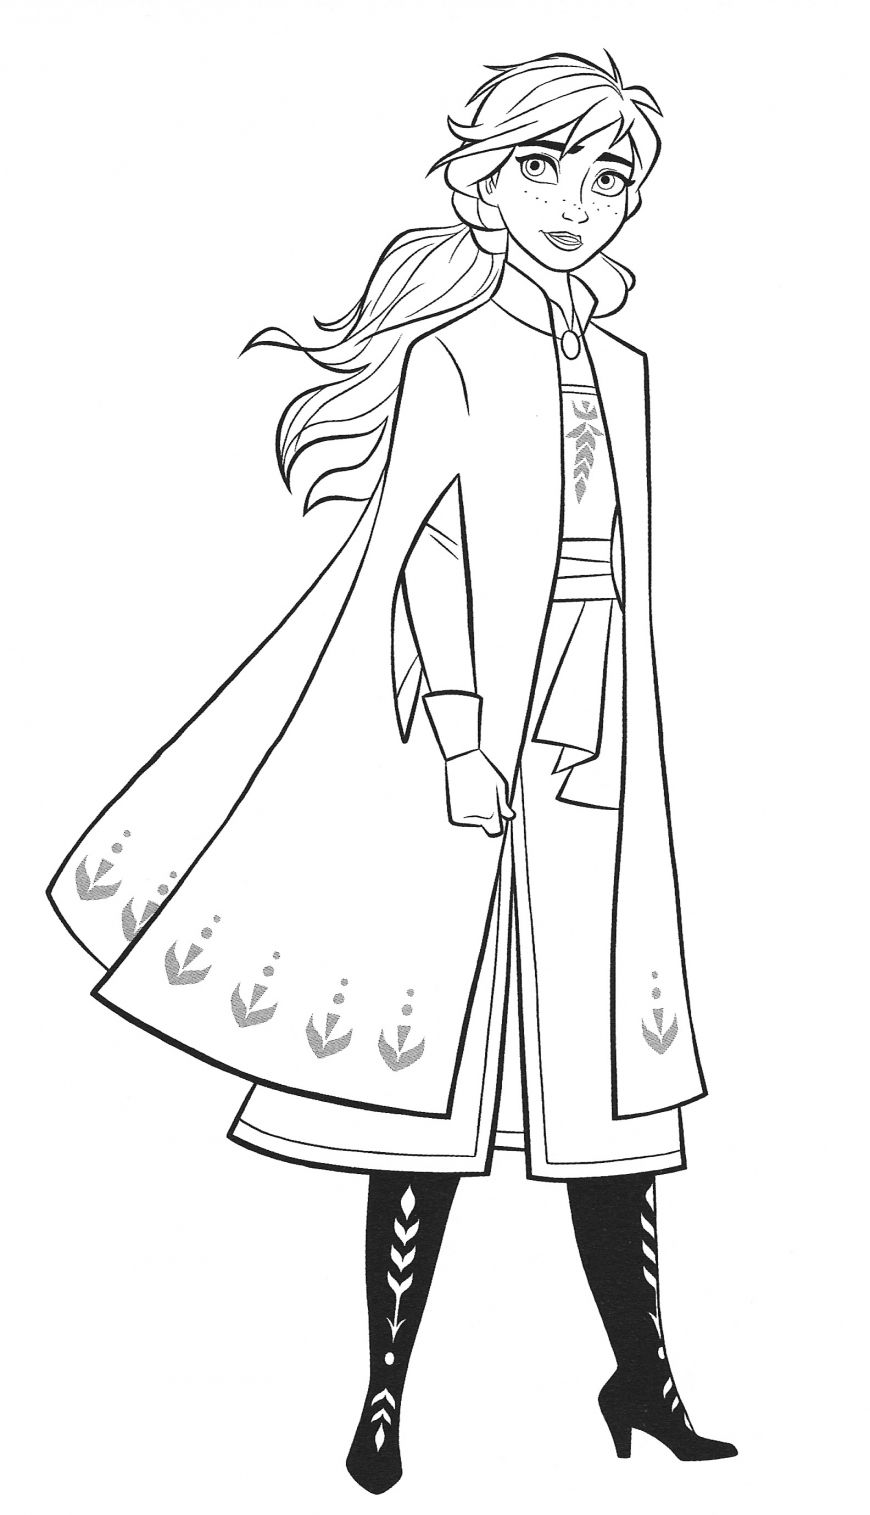 New Frozen 2 Coloring Pages With Anna In 2020